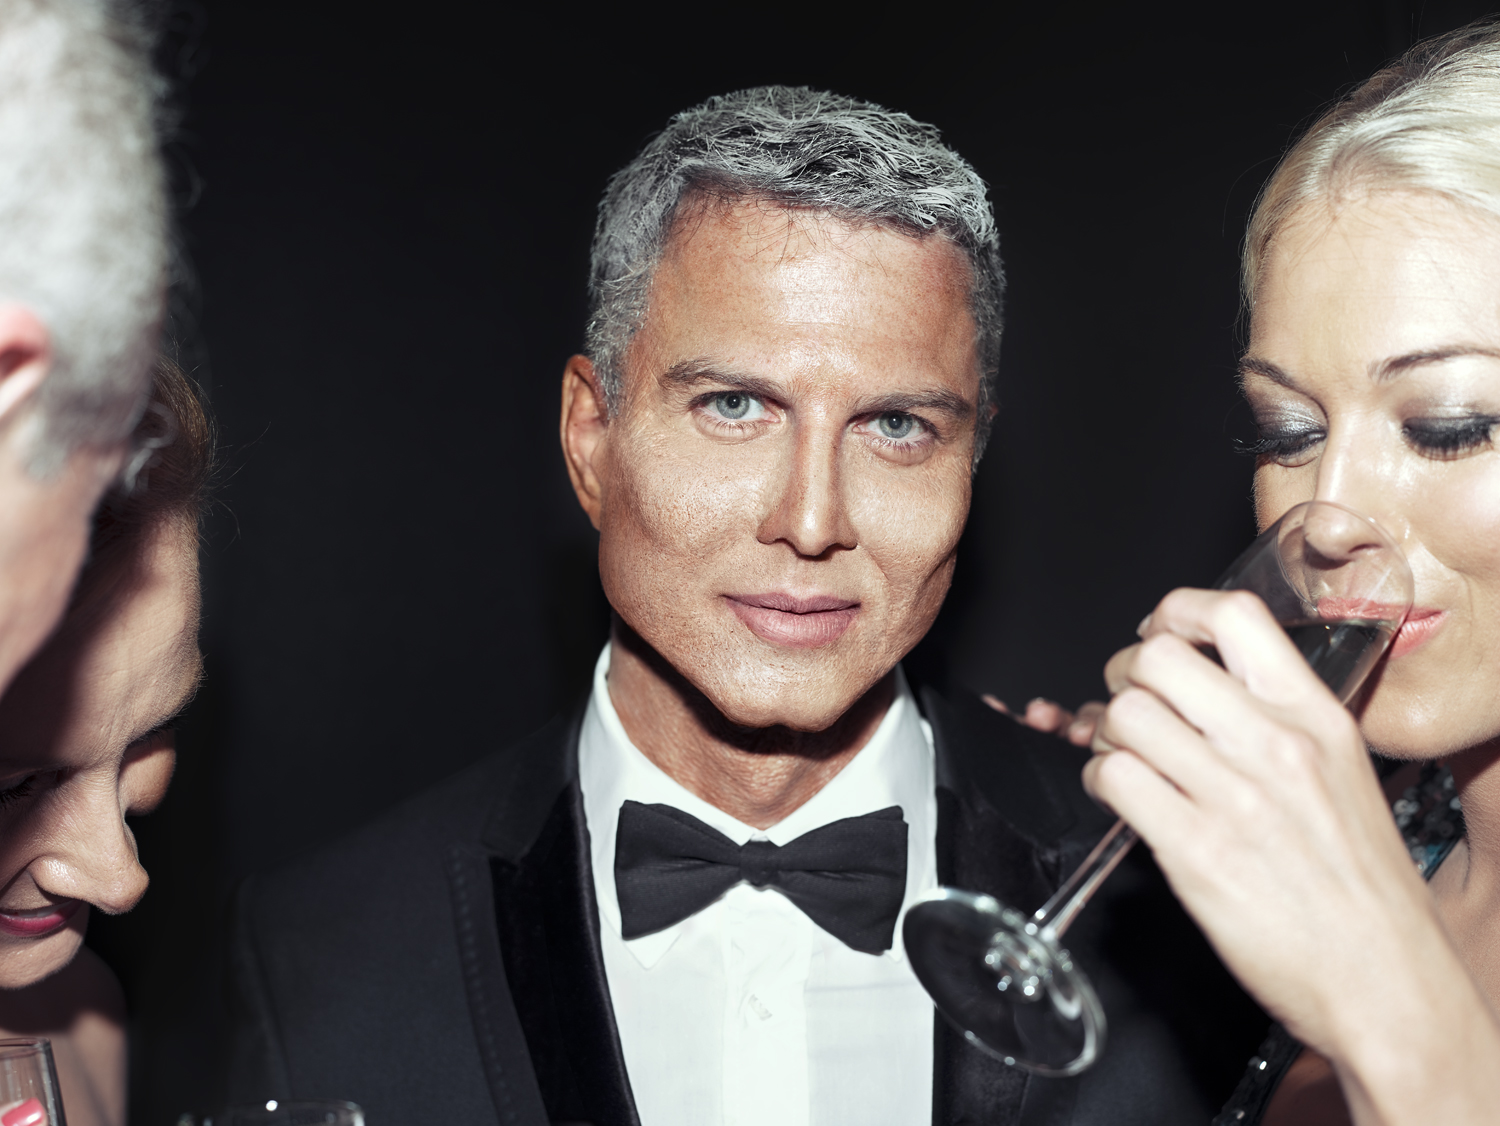 """From """"Maybe"""" which became the documentary   """"The Many Sad Fates of Mr. Toledano."""" Upper East Side Party Phil. © Phillip Toledano"""